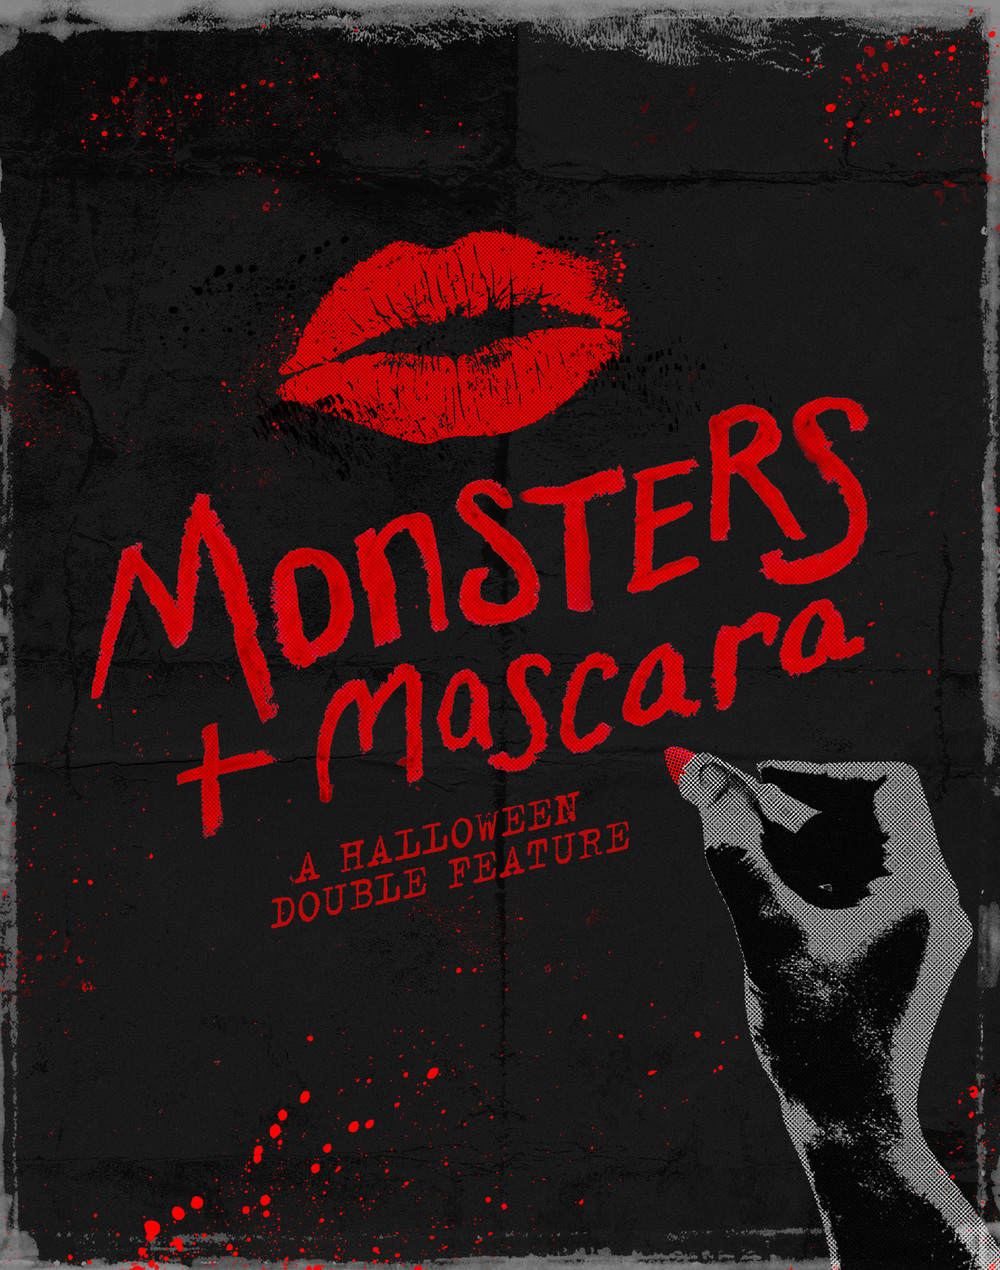 MonstersMascara